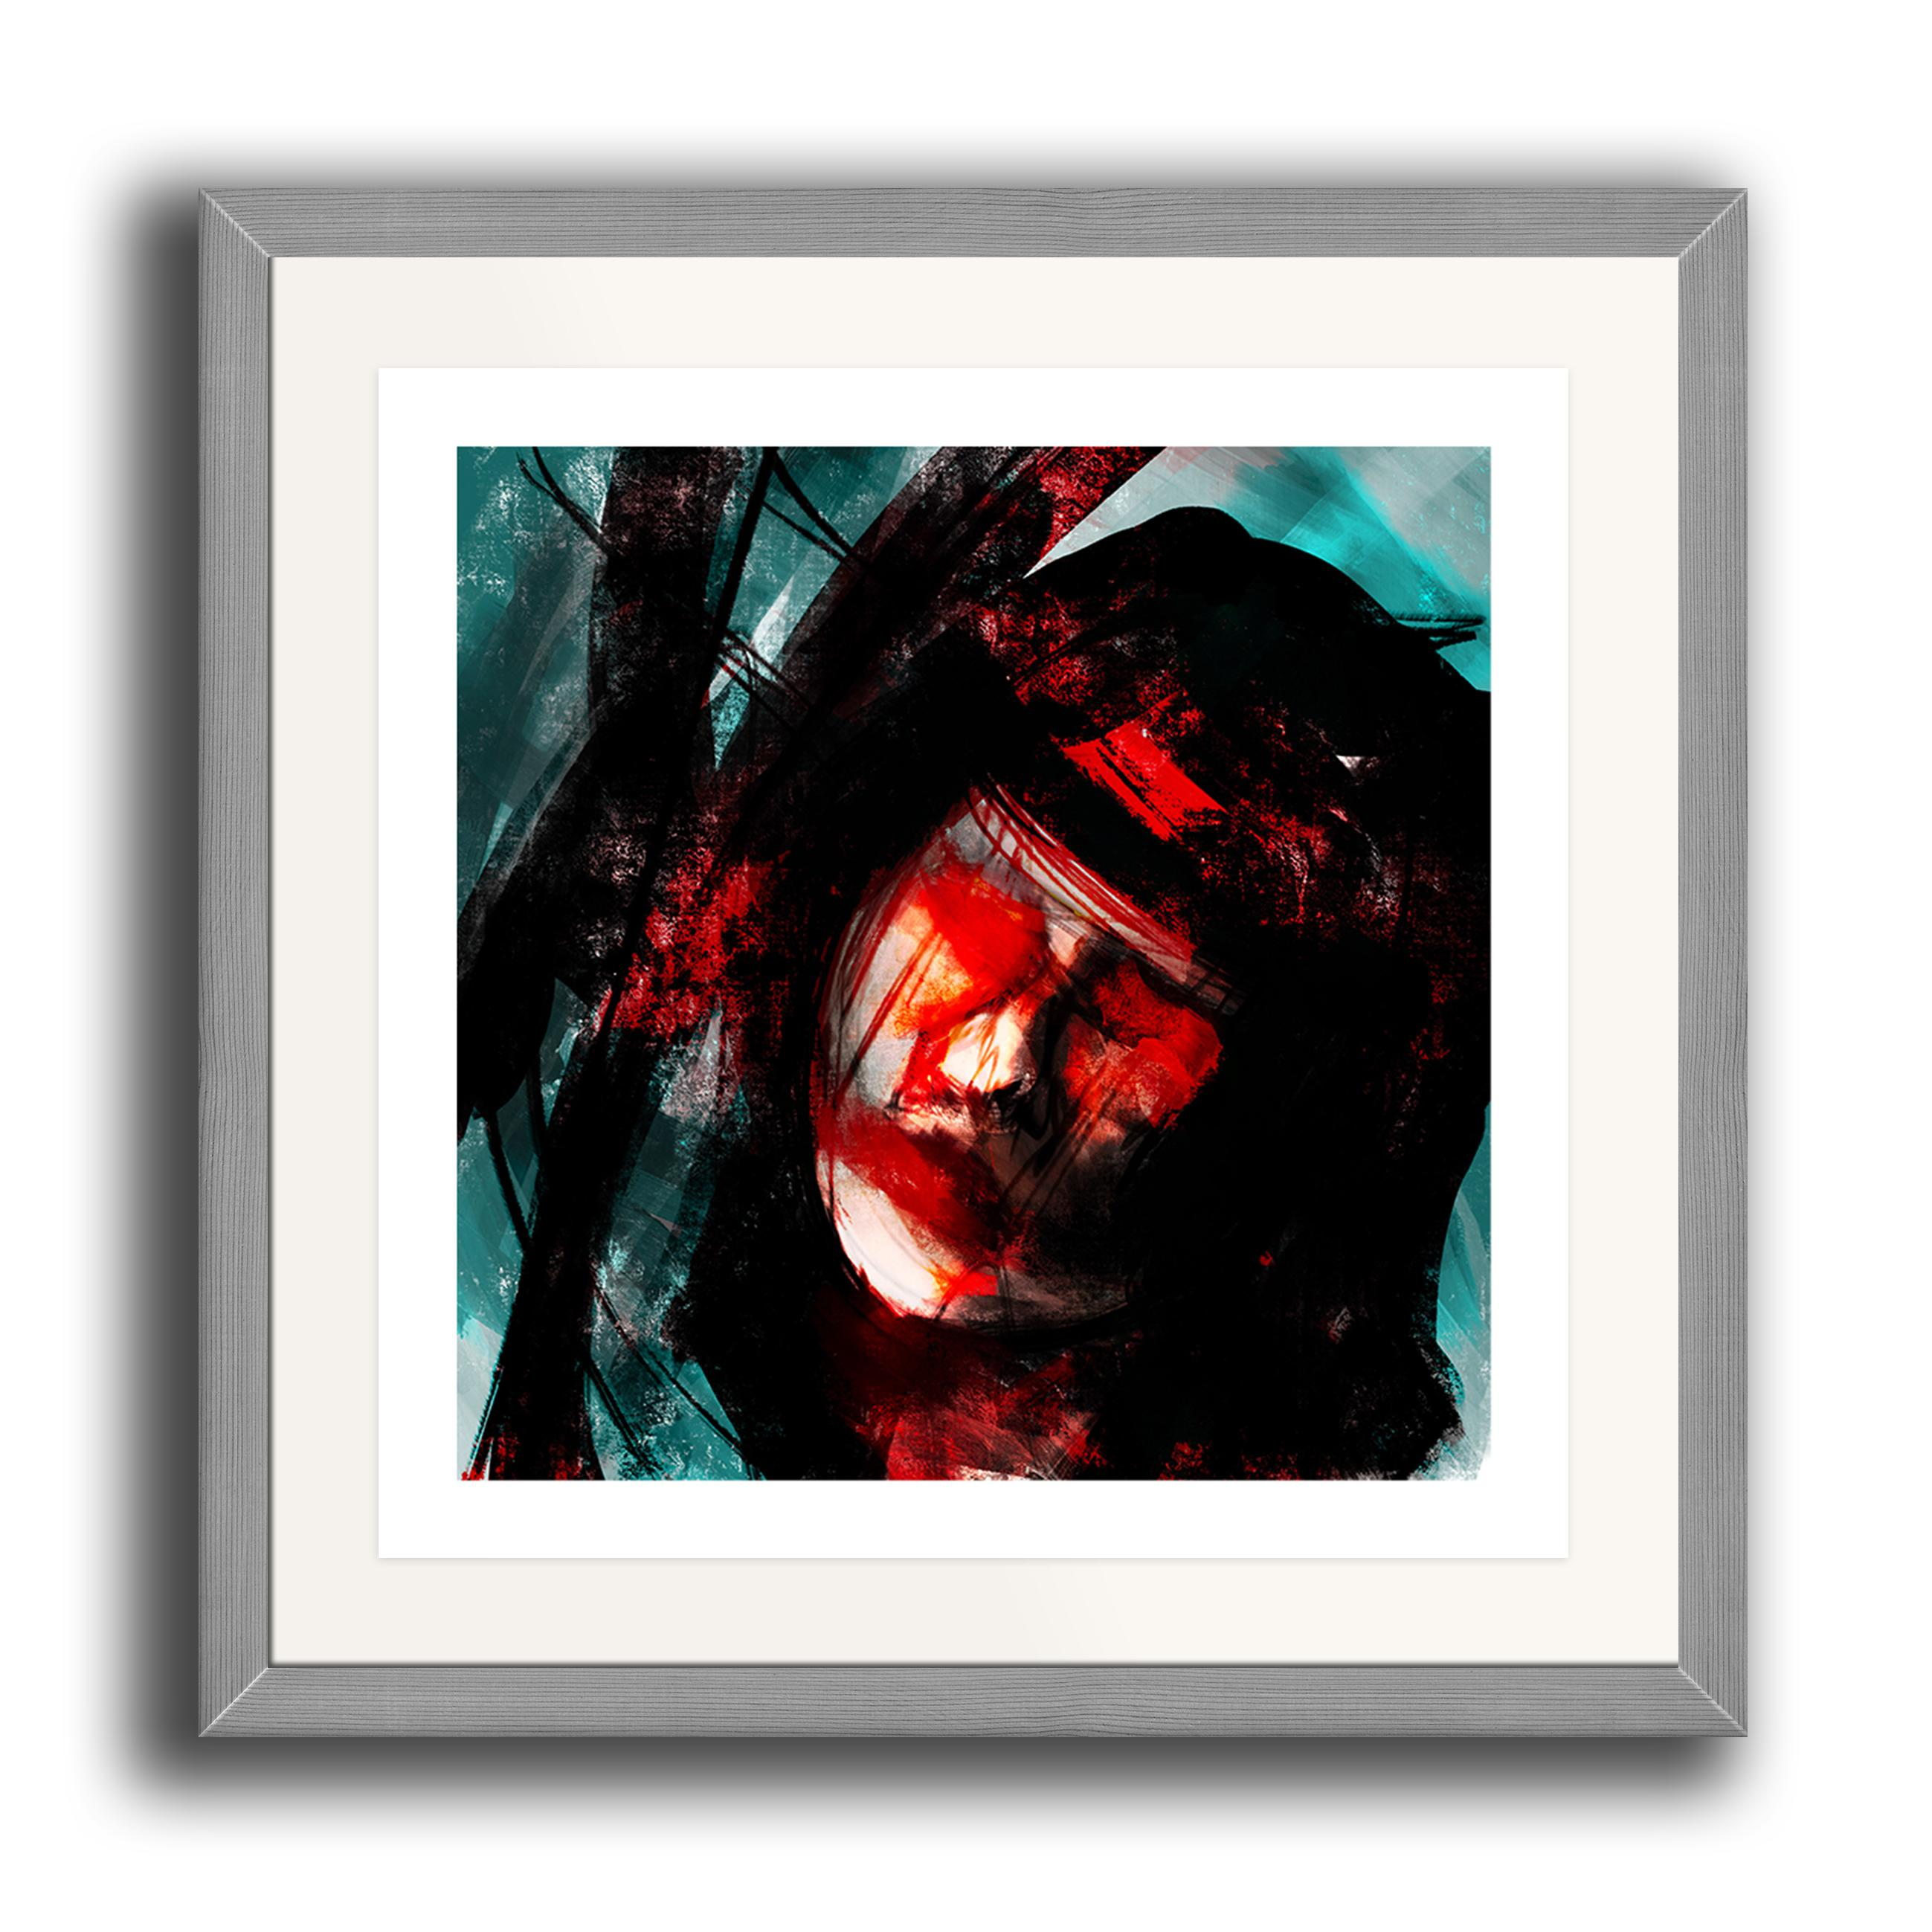 An abstract digital painting by Lily Bourne printed on eco fine art paper titled Tuned showing a female face amongst turquoise, black and red lines. The image is set in a grey coloured picture frame.